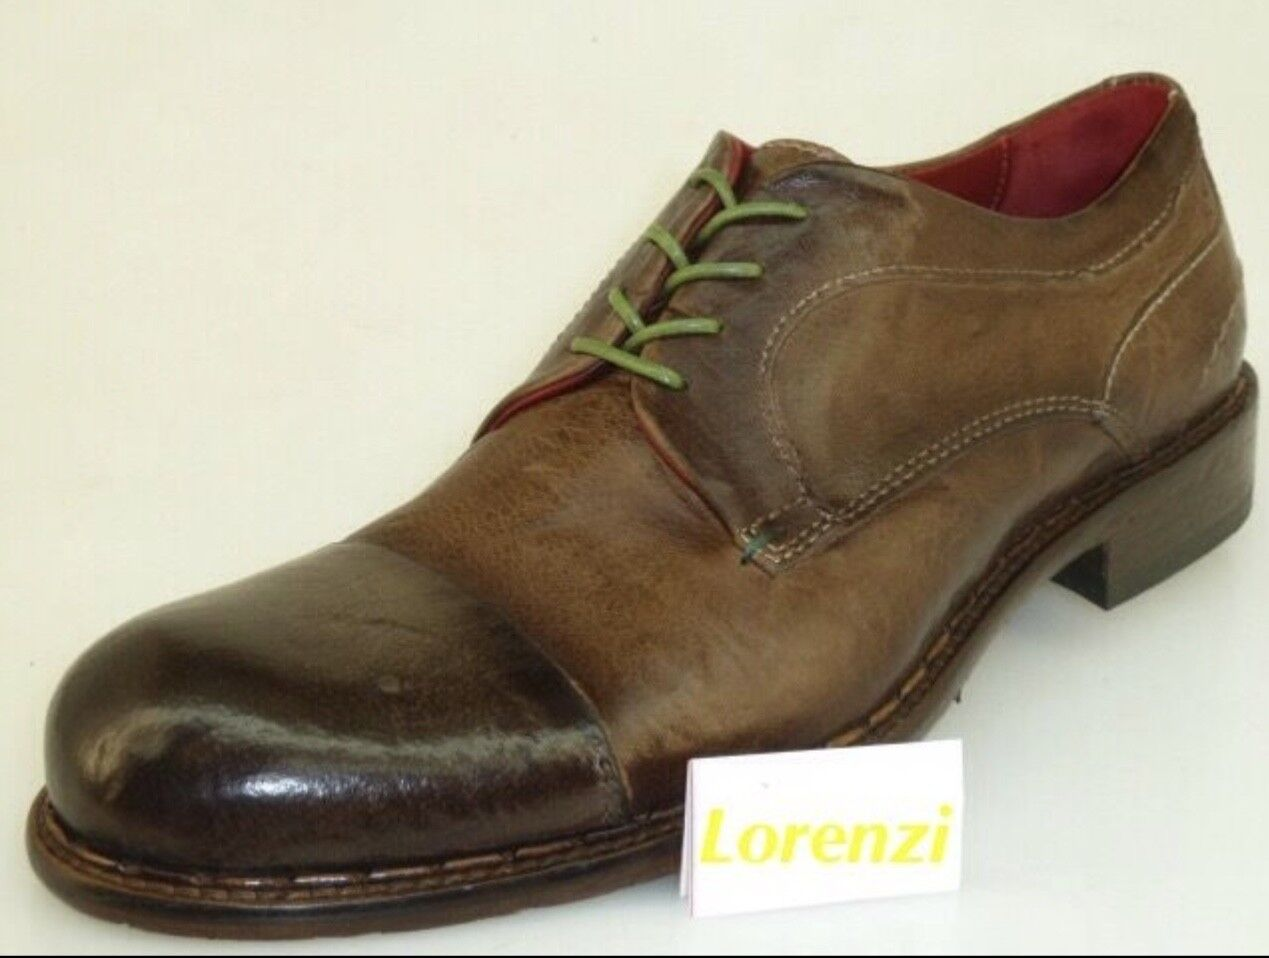 Lorenzi shoes Mens Made in  Handmade Italian Lace Up  41 Leather